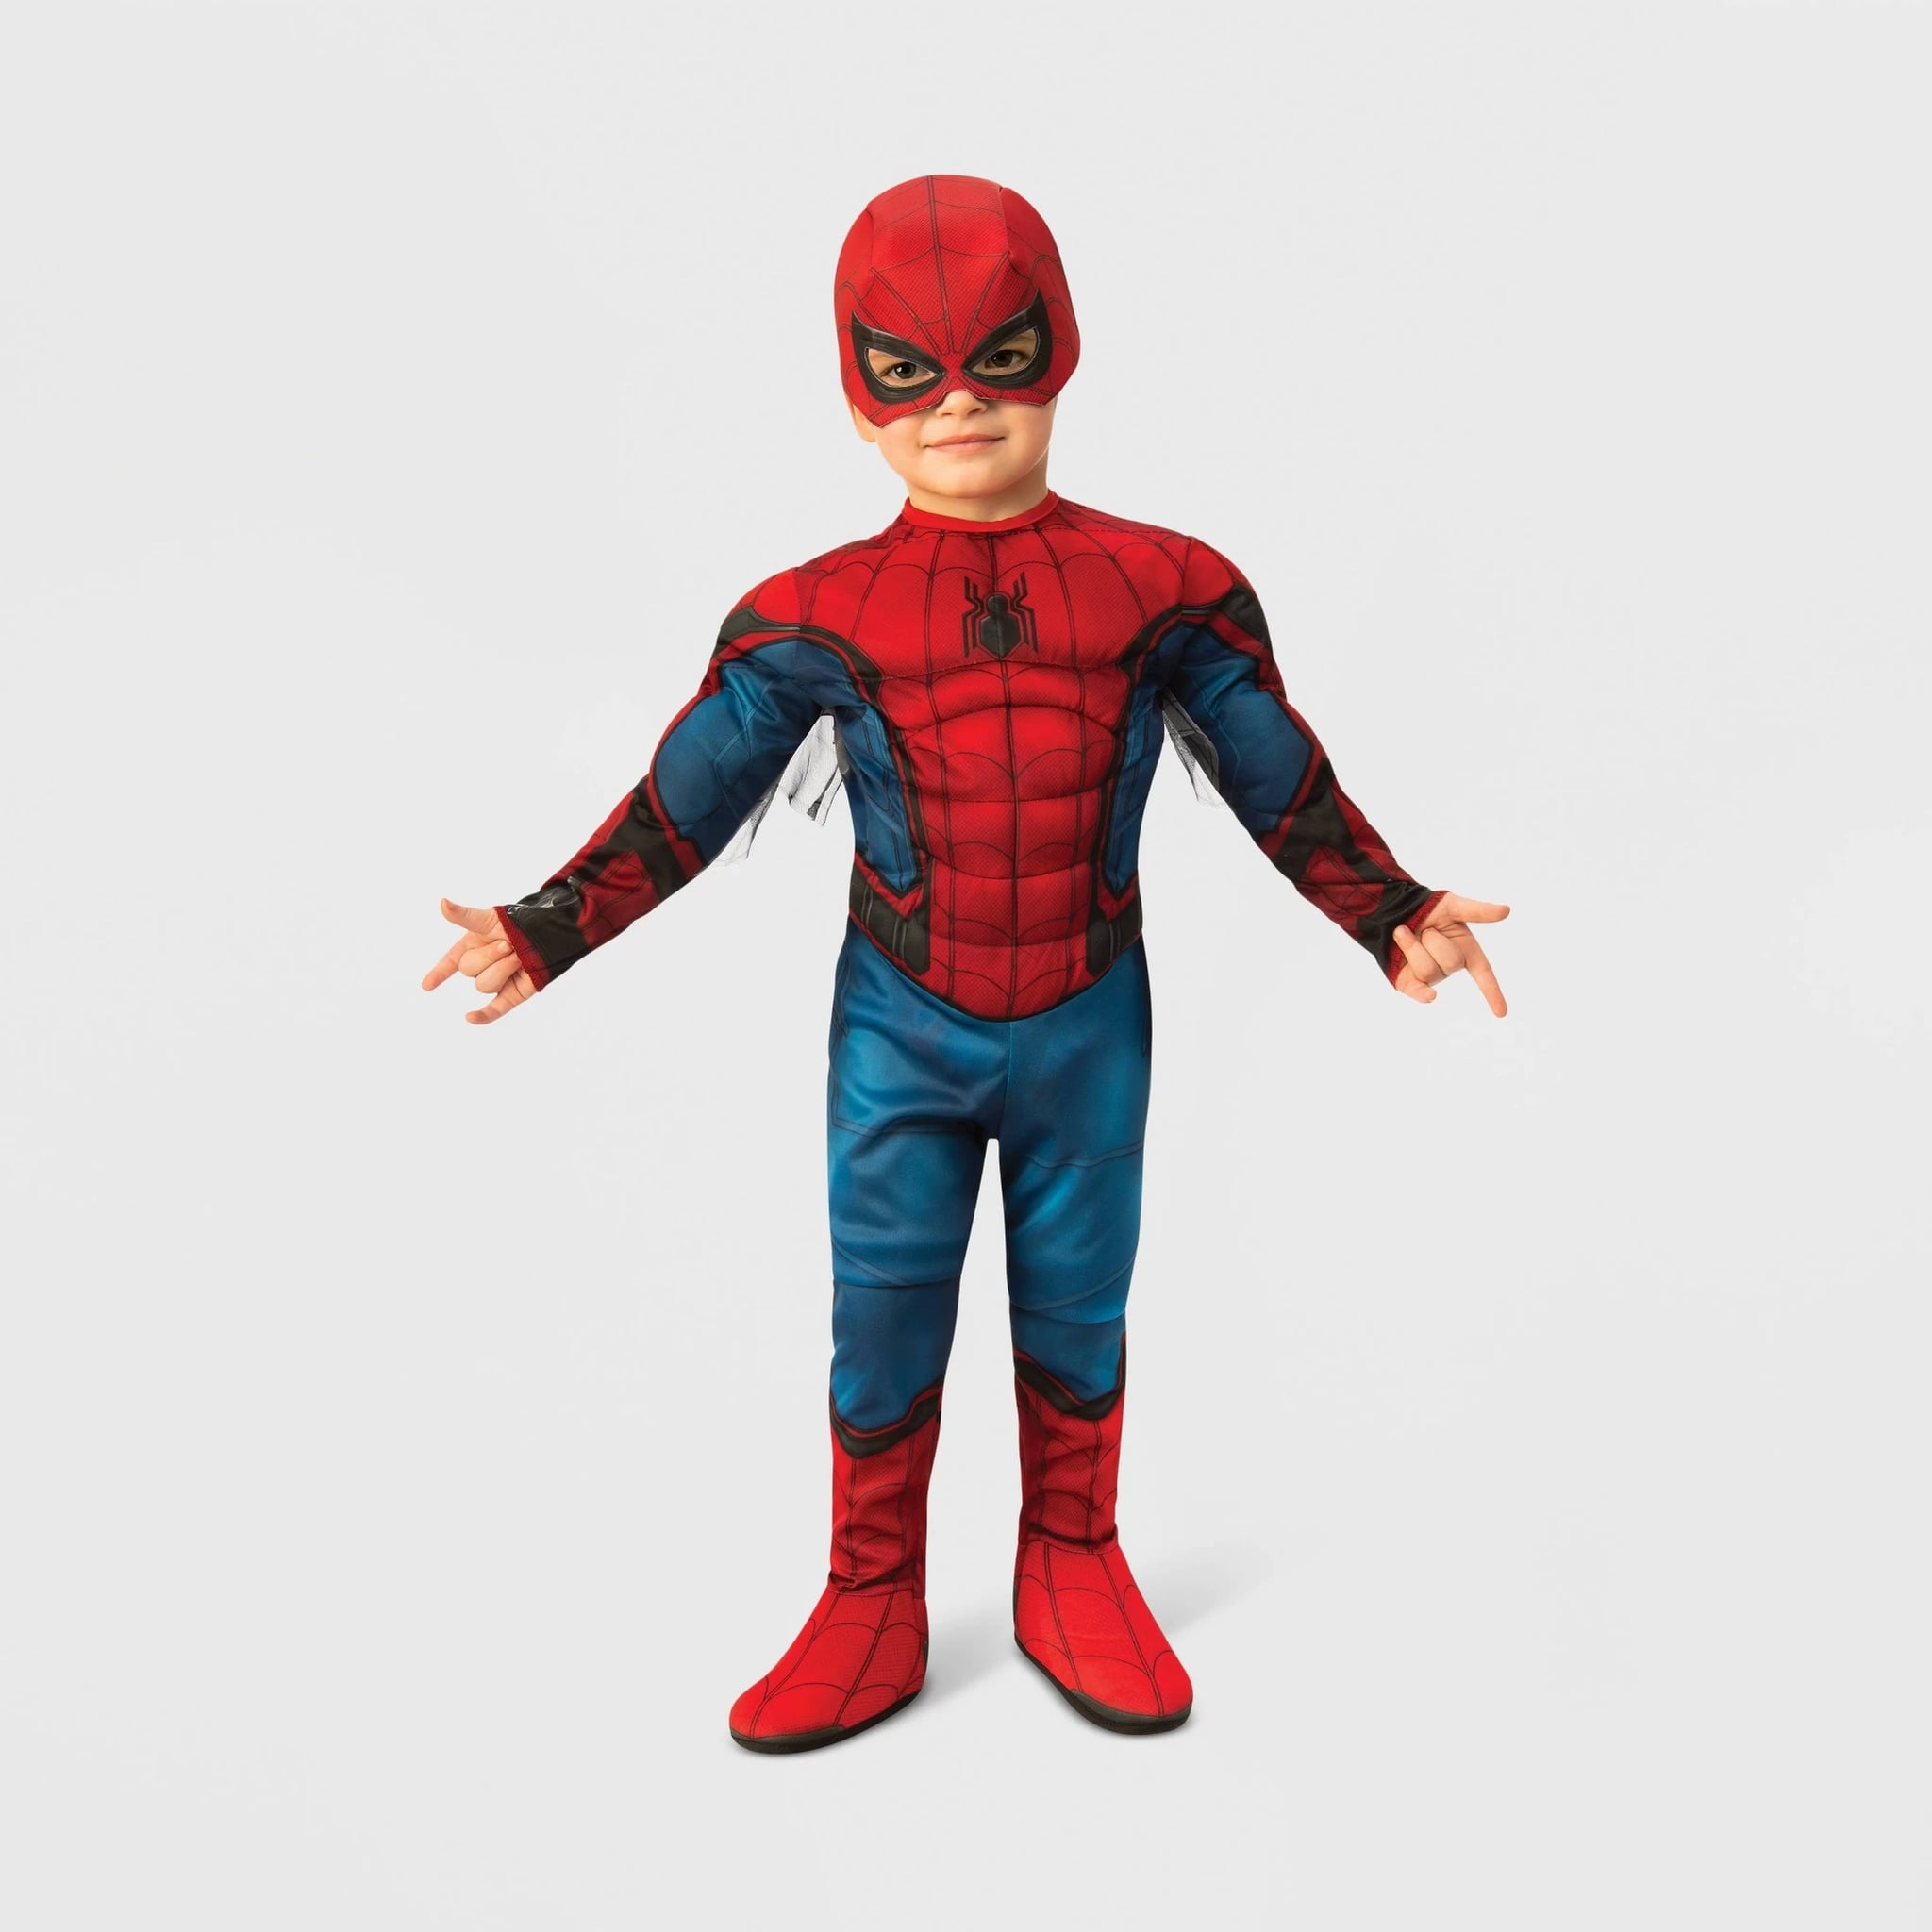 Best Target Halloween Costumes For Toddlers Popsugar Family When air force pilot carol danvers was caught in a kree energy explosion, she gained the powers of flight, super strength, and energy expulsion. halloween costumes for toddlers